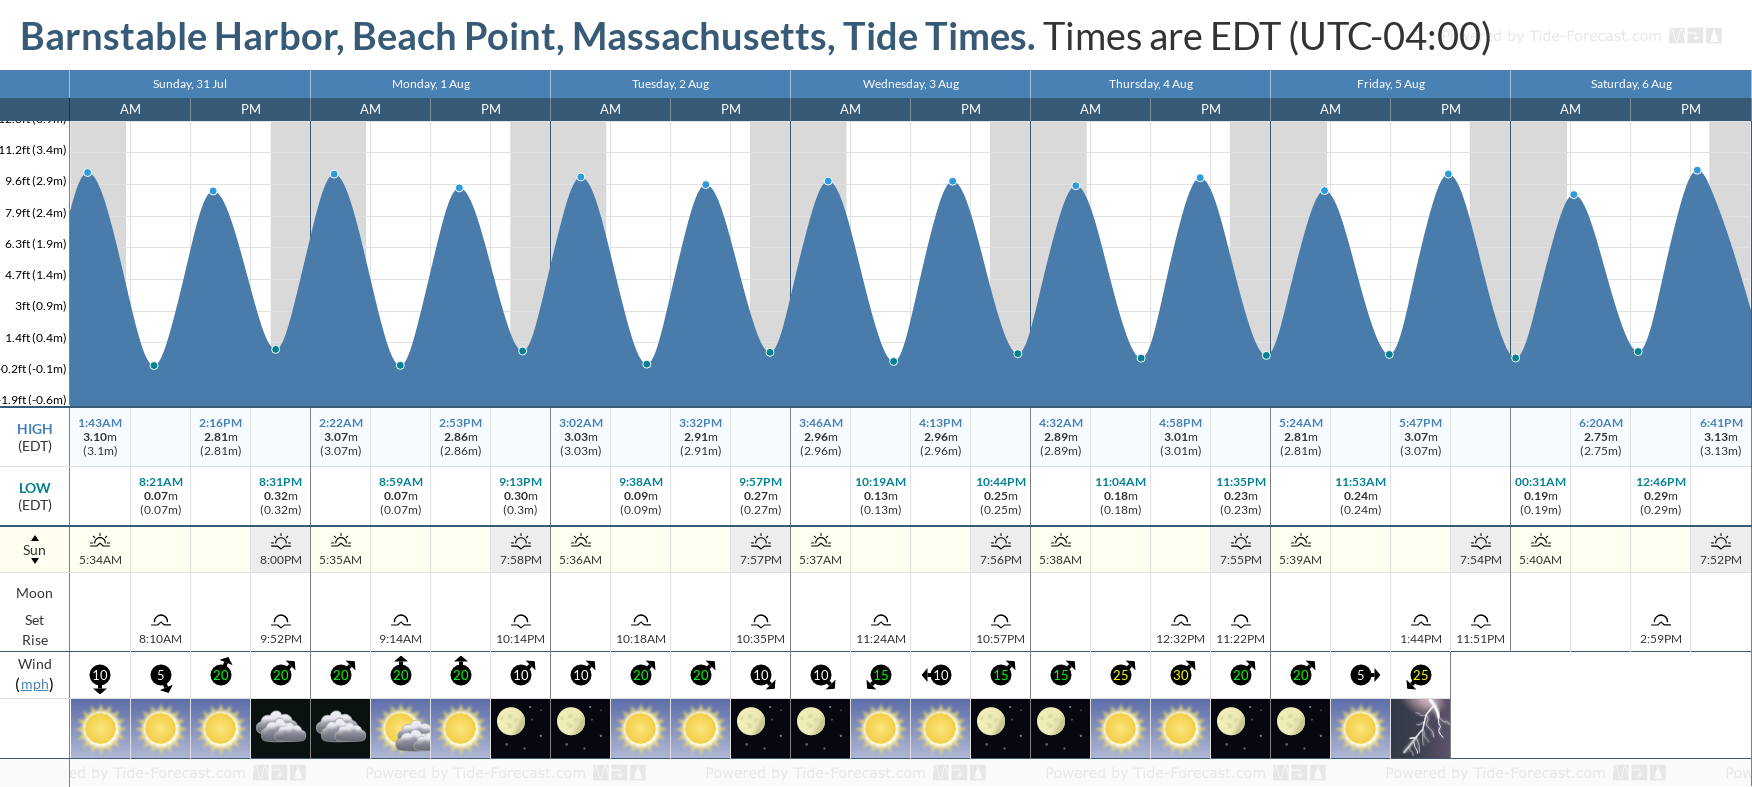 Barnstable Harbor, Beach Point, Massachusetts Tide Chart including high and low tide tide times for the next 7 days